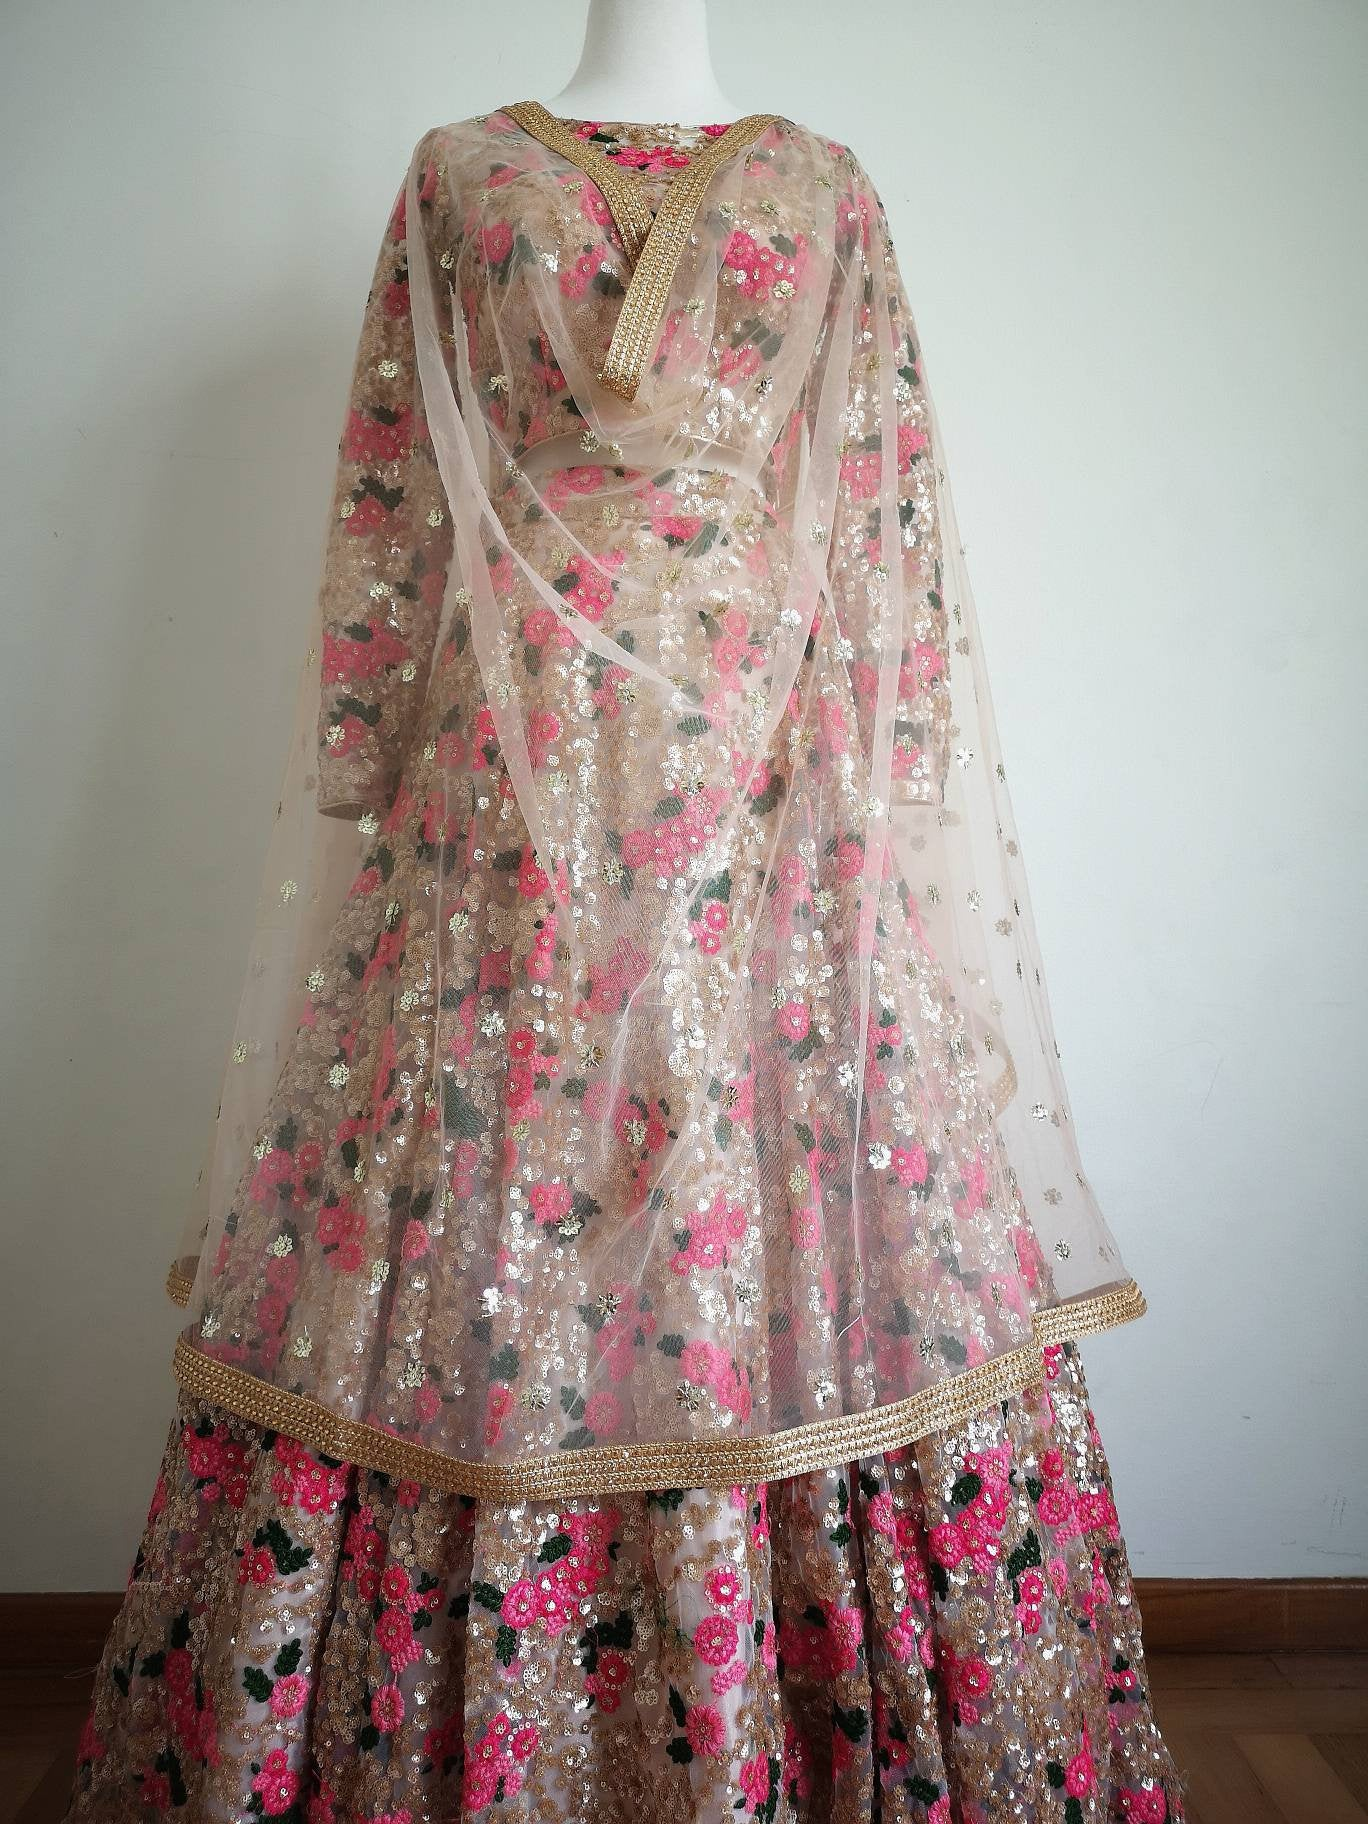 Sabyasachi Stunning Gold floral embroidery for lehenga, gown, anarkali Indian Pakistani wedding bride bridal bridesmaid - Pink Chunari